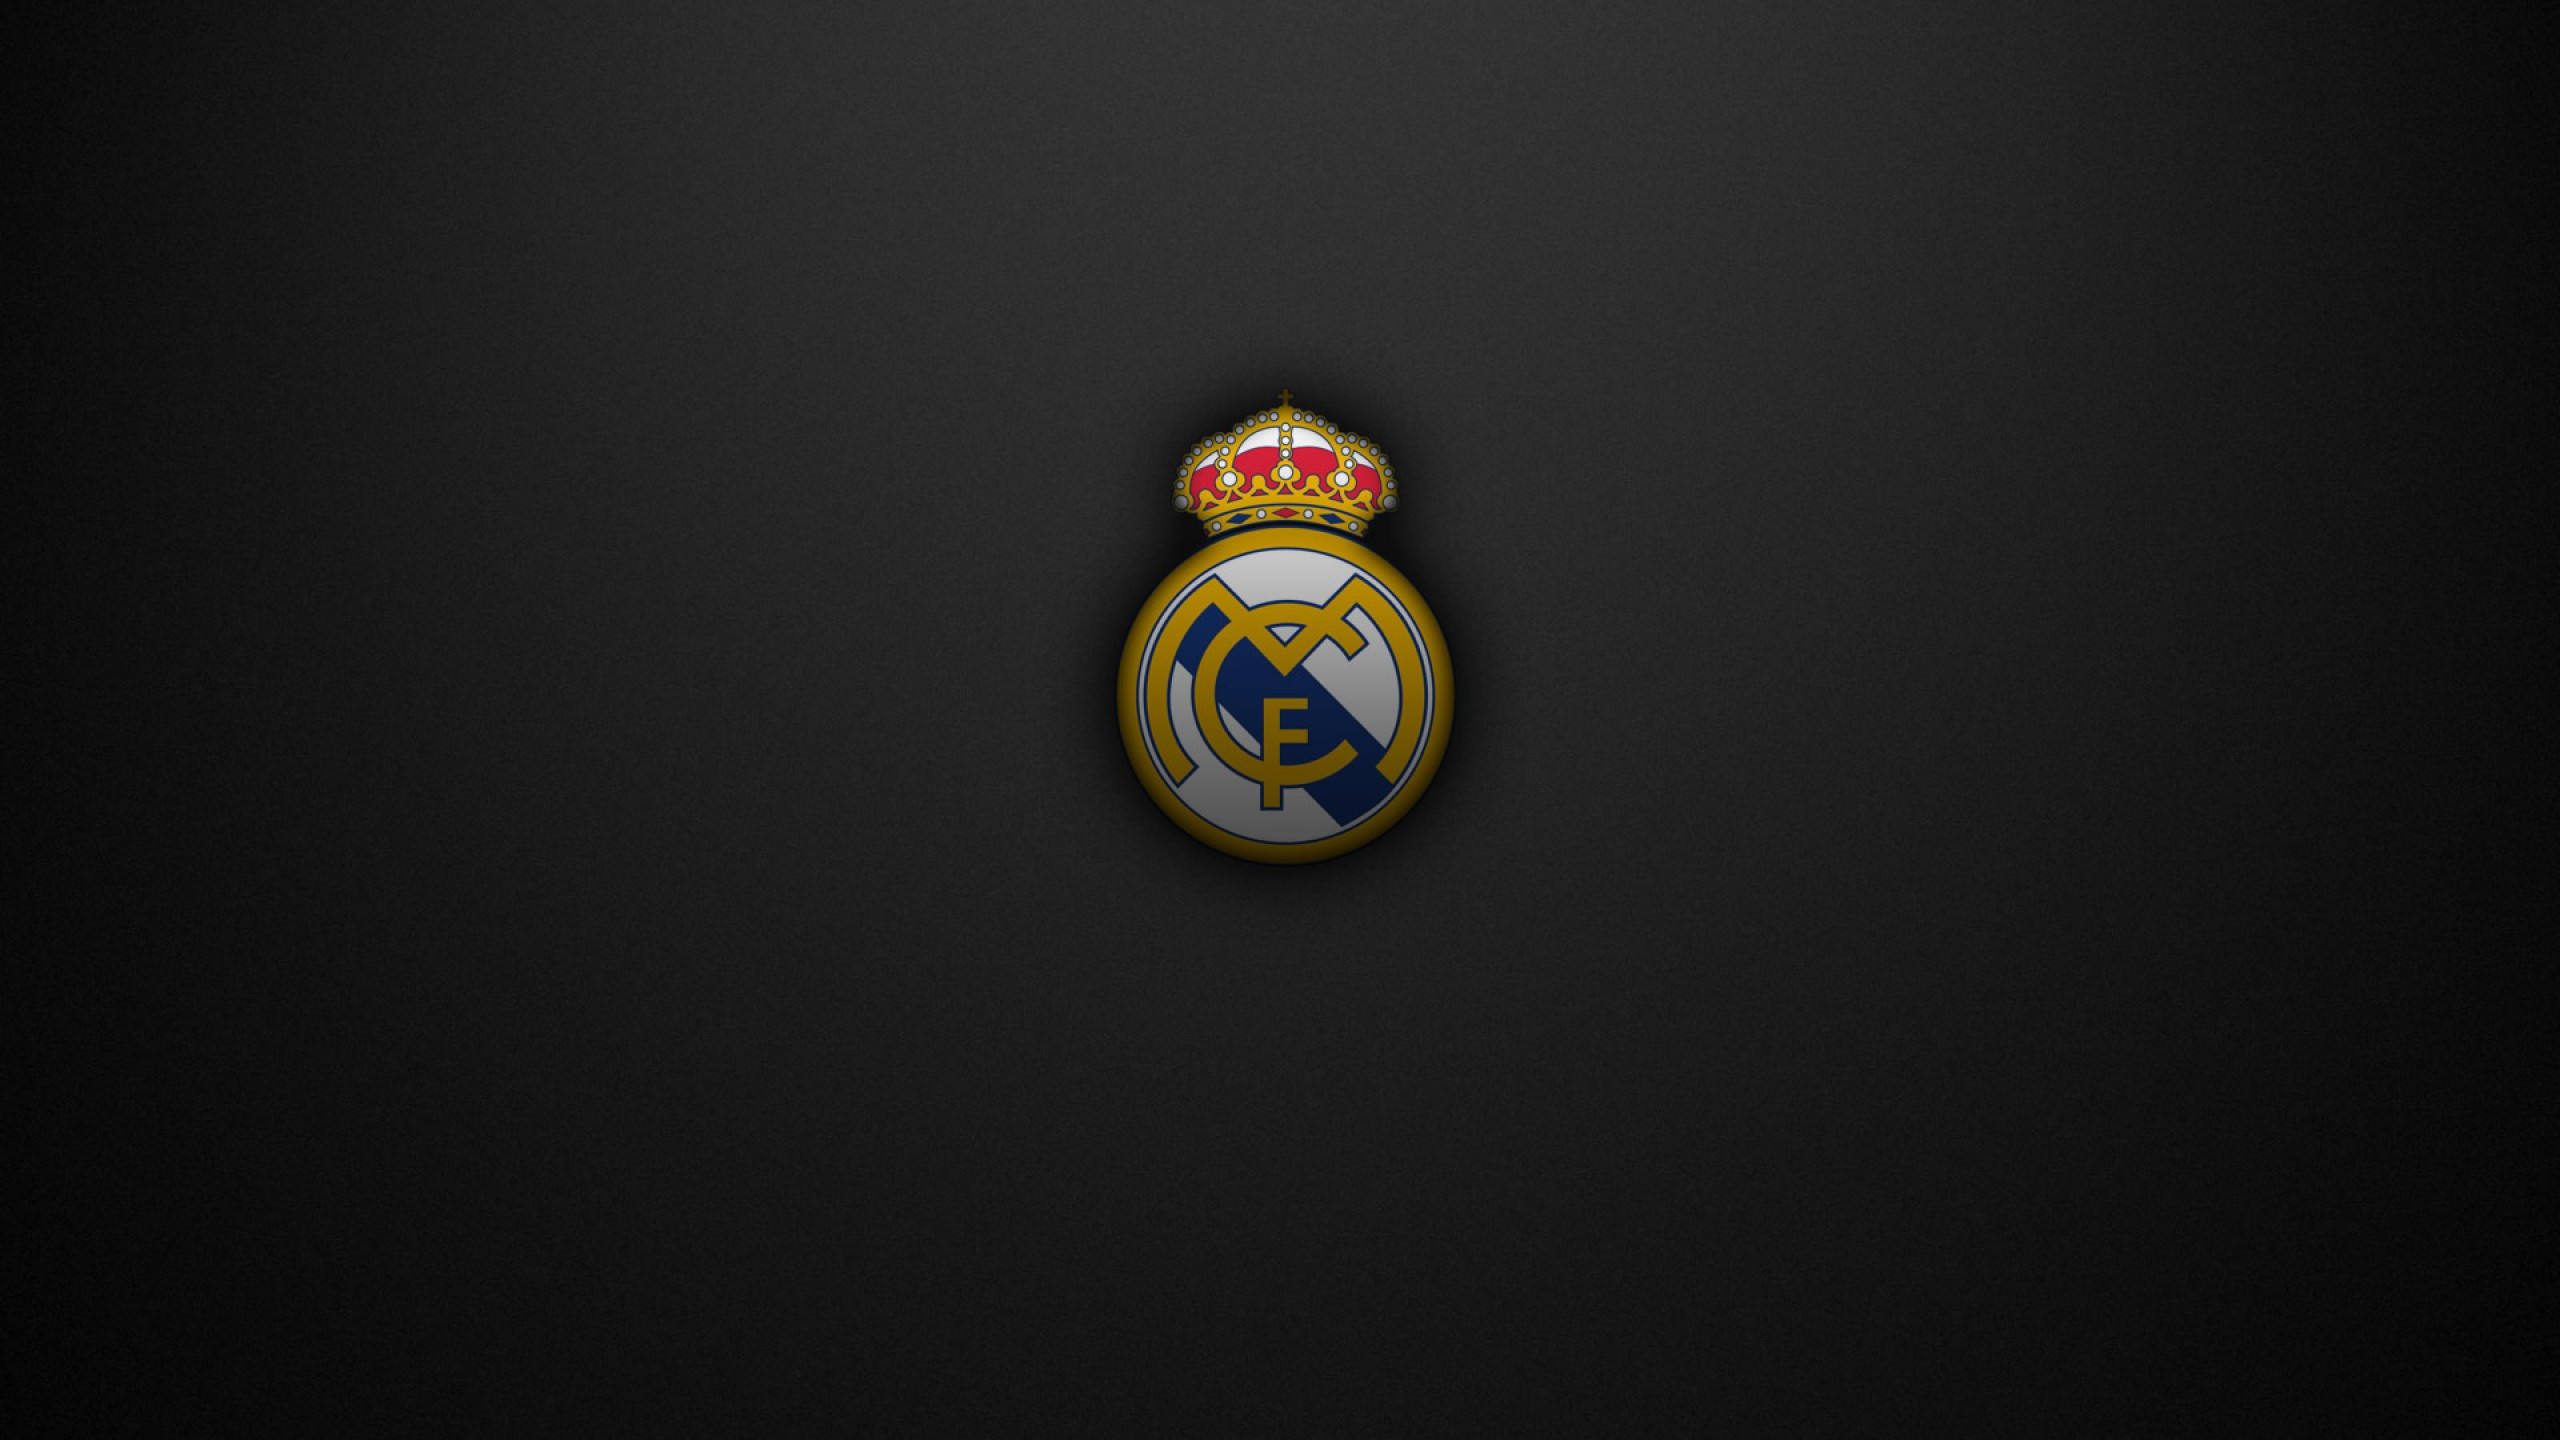 Escudo real madrid cf escudo real madrid cf descargar thecheapjerseys Image collections